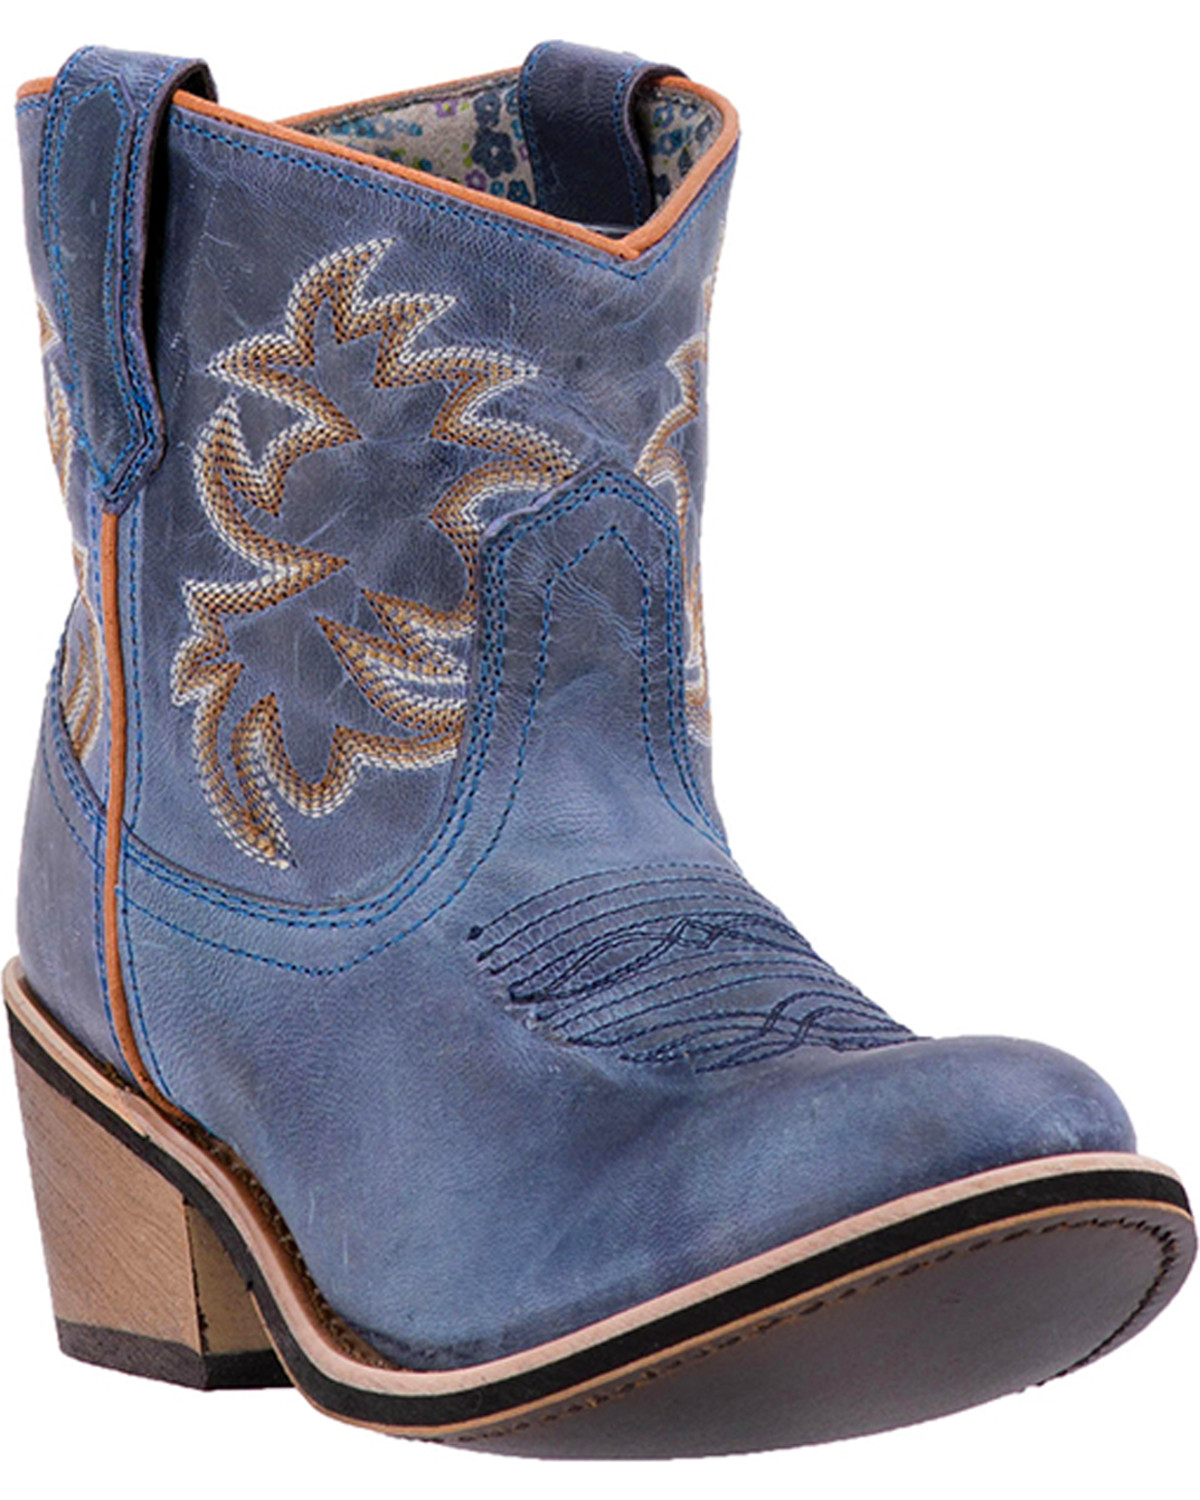 c07185da1f2f Laredo Womens Sapphyre Leather Western Booties - Round Toe